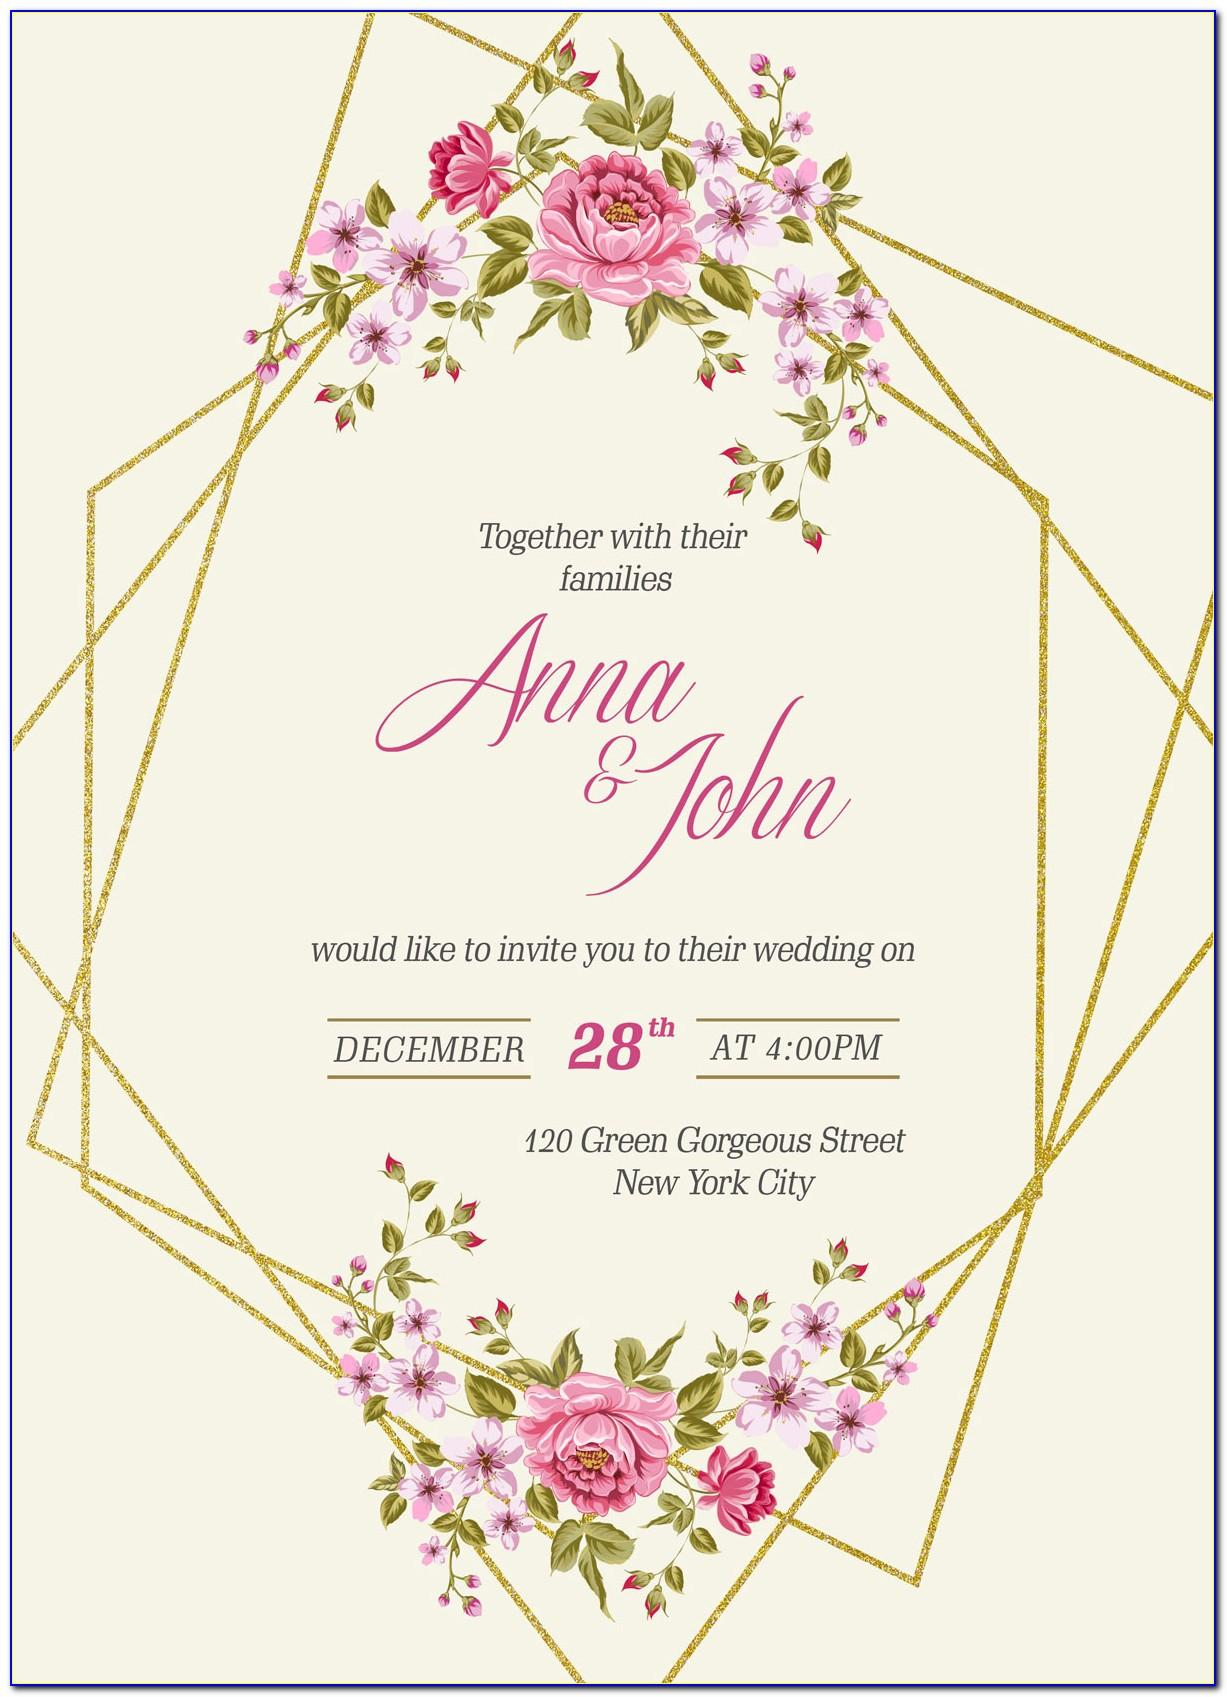 Invitation Card Template Online Free